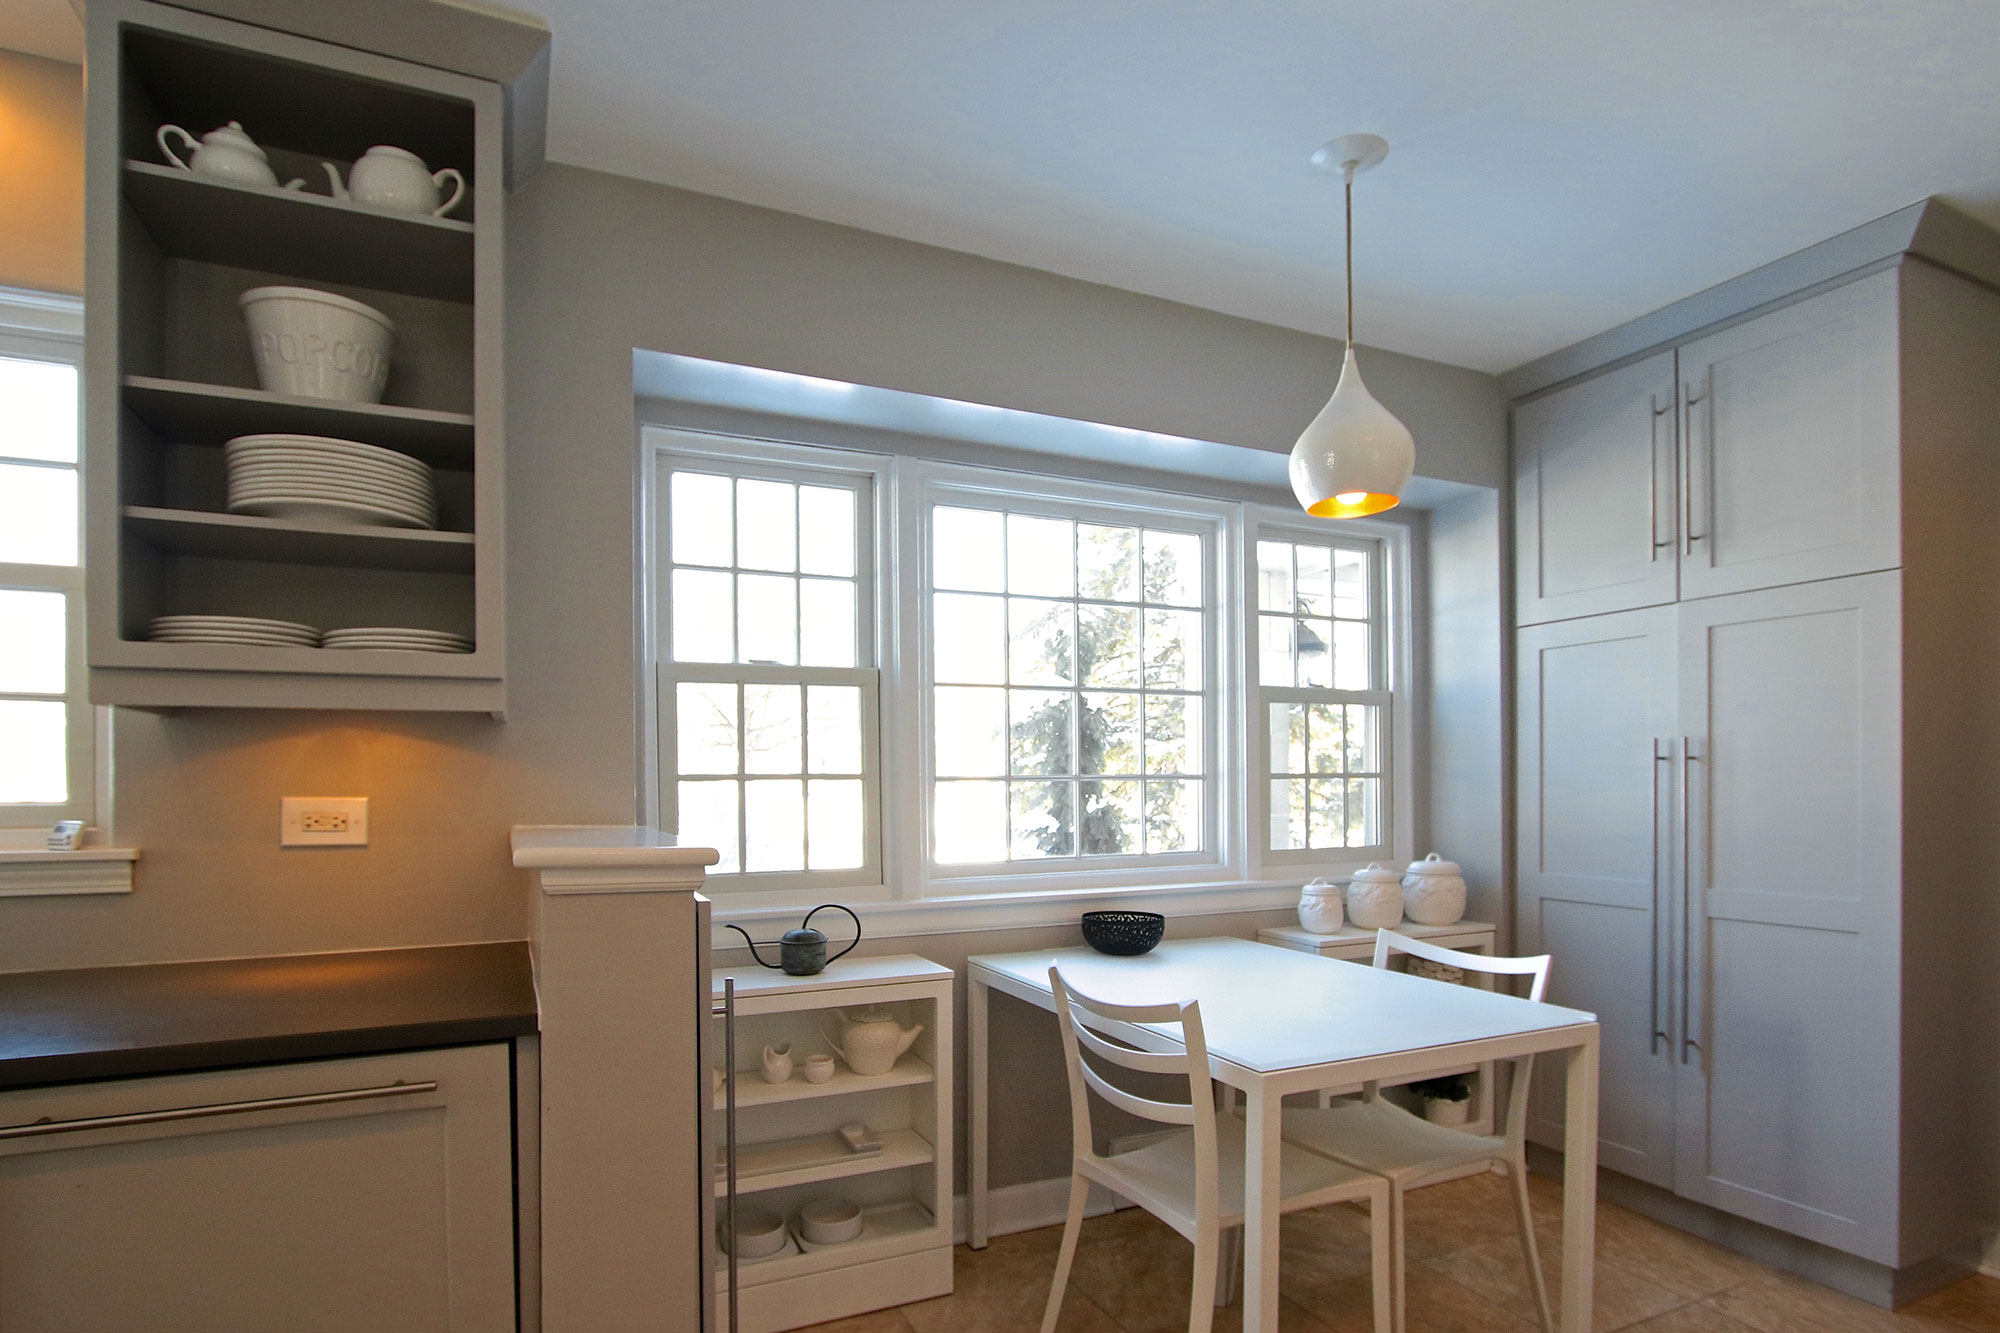 Mdf gallery kitchen and bathroom cabinets kitchen cabinets bathroom vanity cabinets for Kitchen and bathroom cabinets